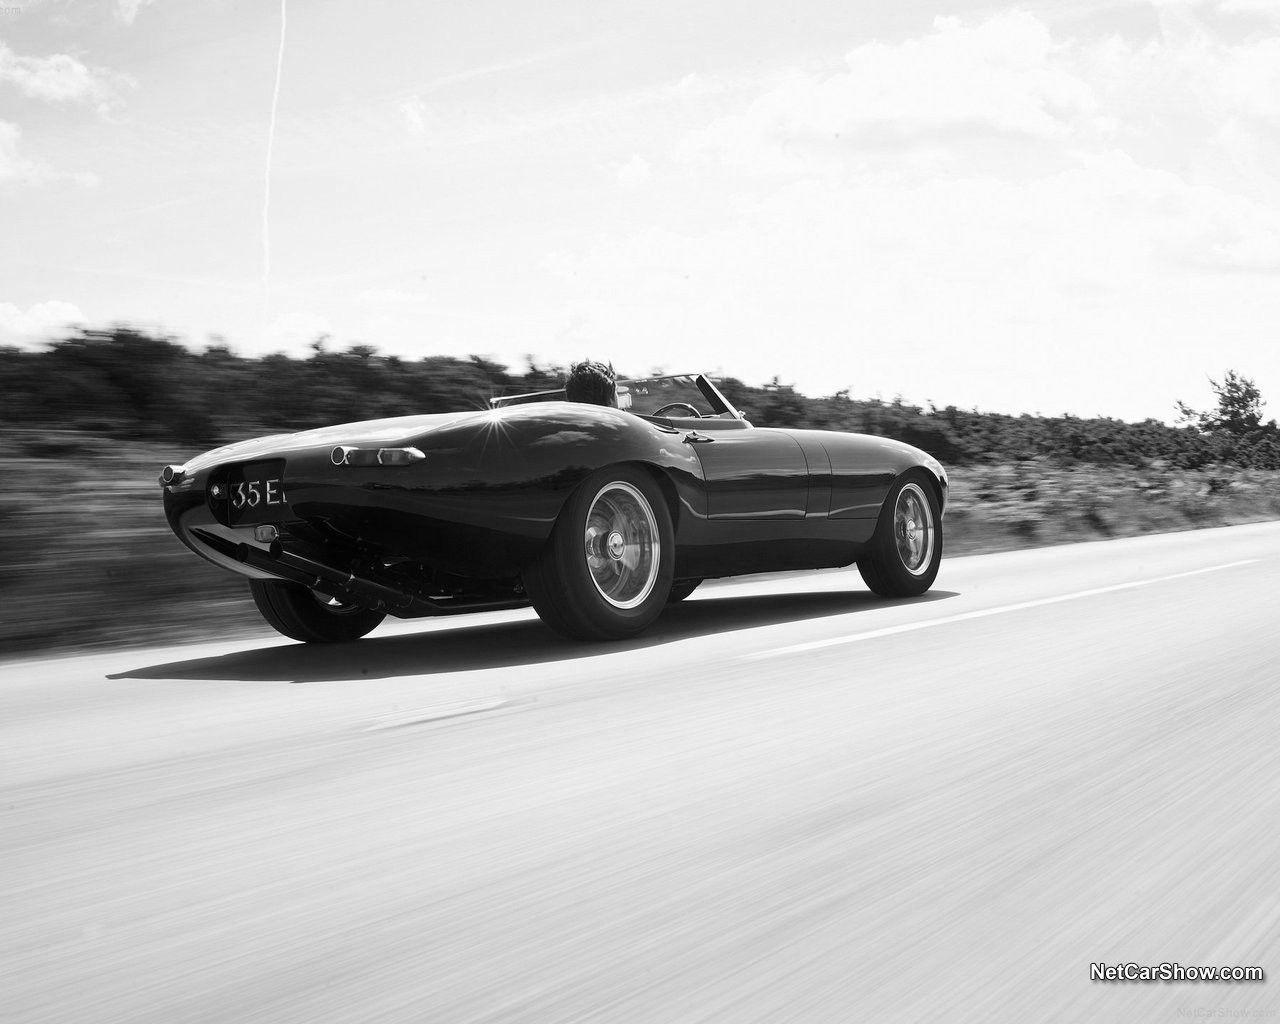 Jaguar E Type Wallpapers Wallpaper Cave HD Wallpapers Download free images and photos [musssic.tk]